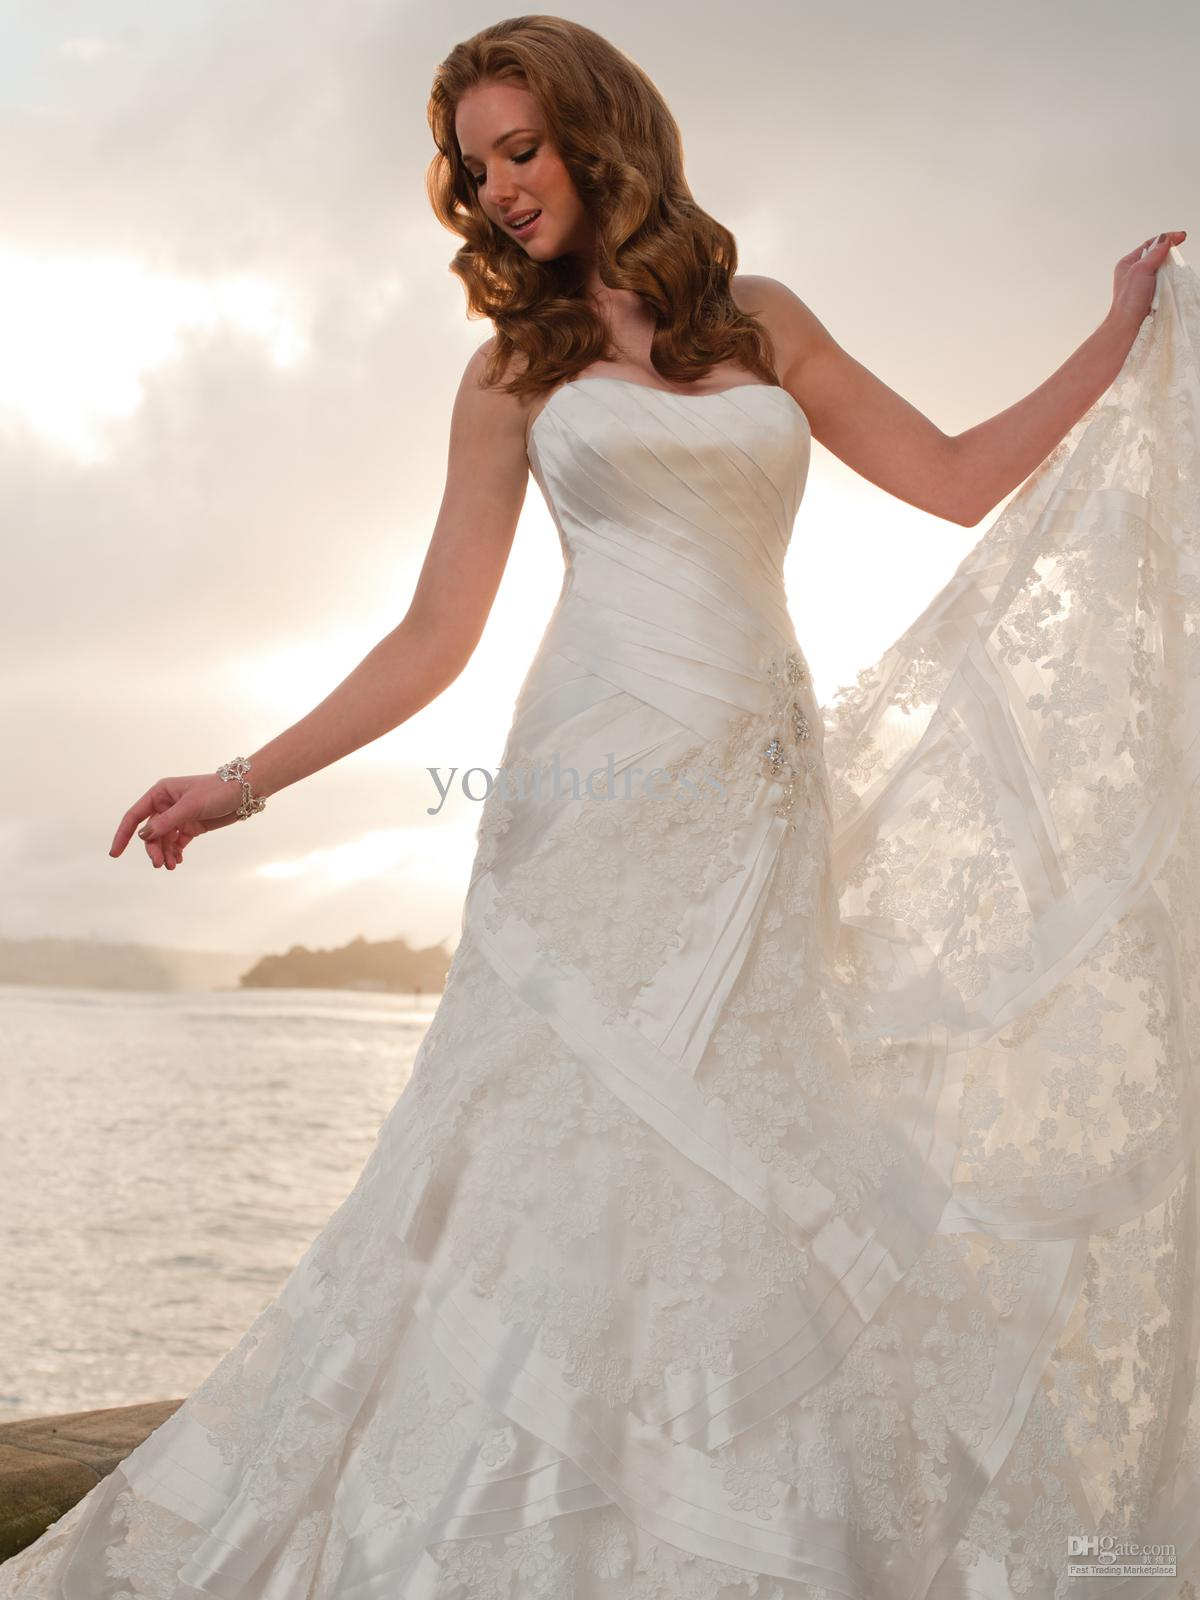 Beach Dresses for a Wedding, Casual Wedding Dresses, Simple Beach Wedding Dresses, Sundresses for Beach Wedding Guests, Simple Wedding Dresses for Second Wedding, Casual Beach Wedding Guest Dresses, Beach Wedding Dresses 2015, Beach Style Wedding Dresses 2015